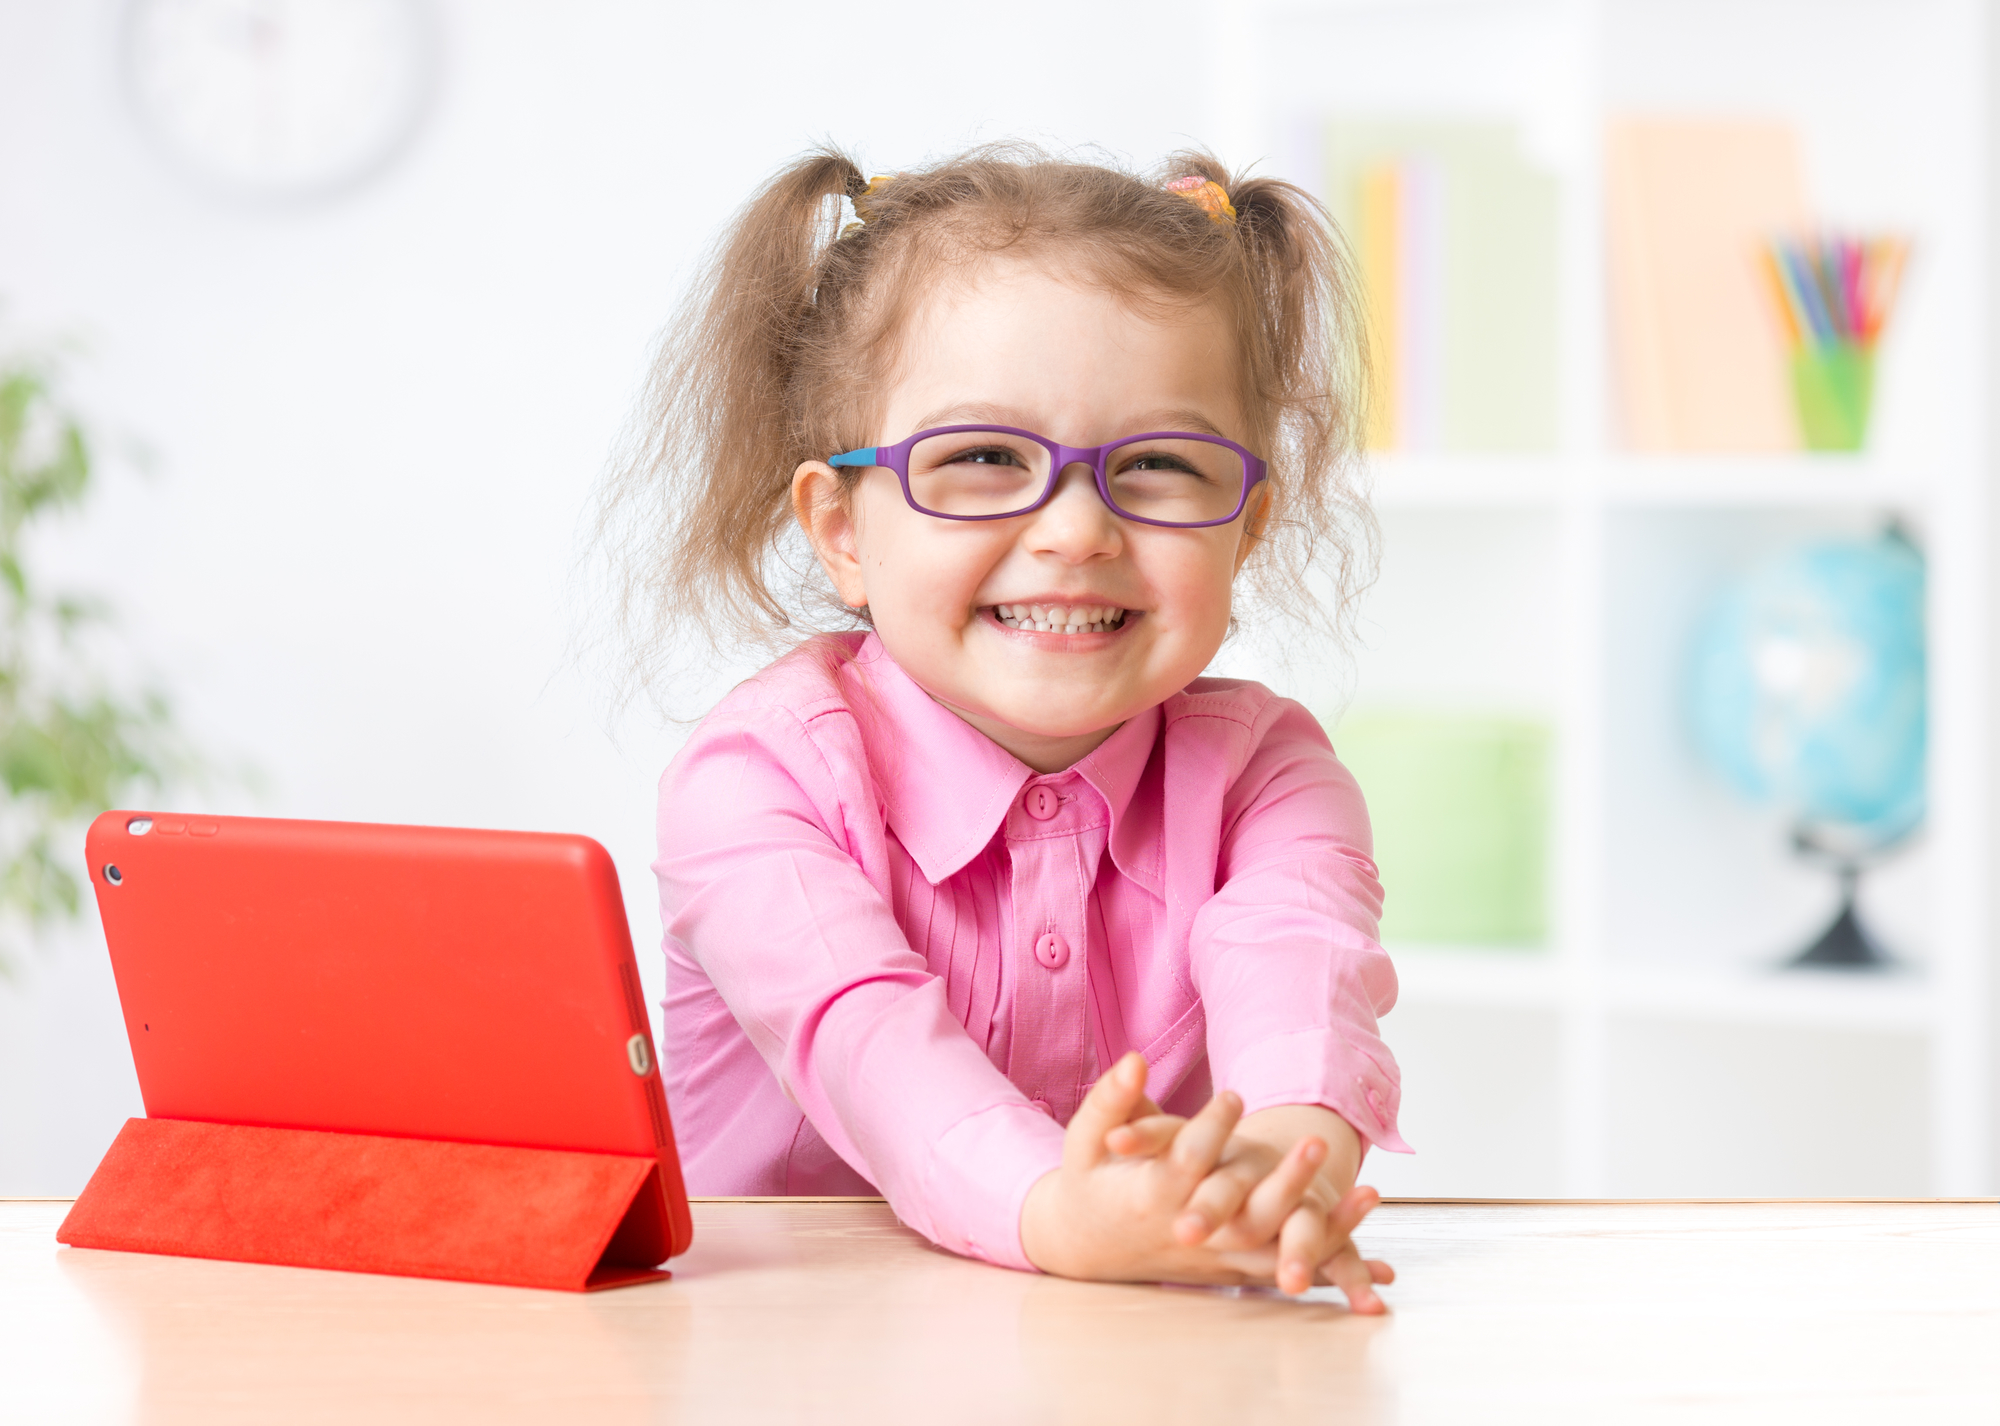 Resources To Help Parents Navigate Technology With Their Kids